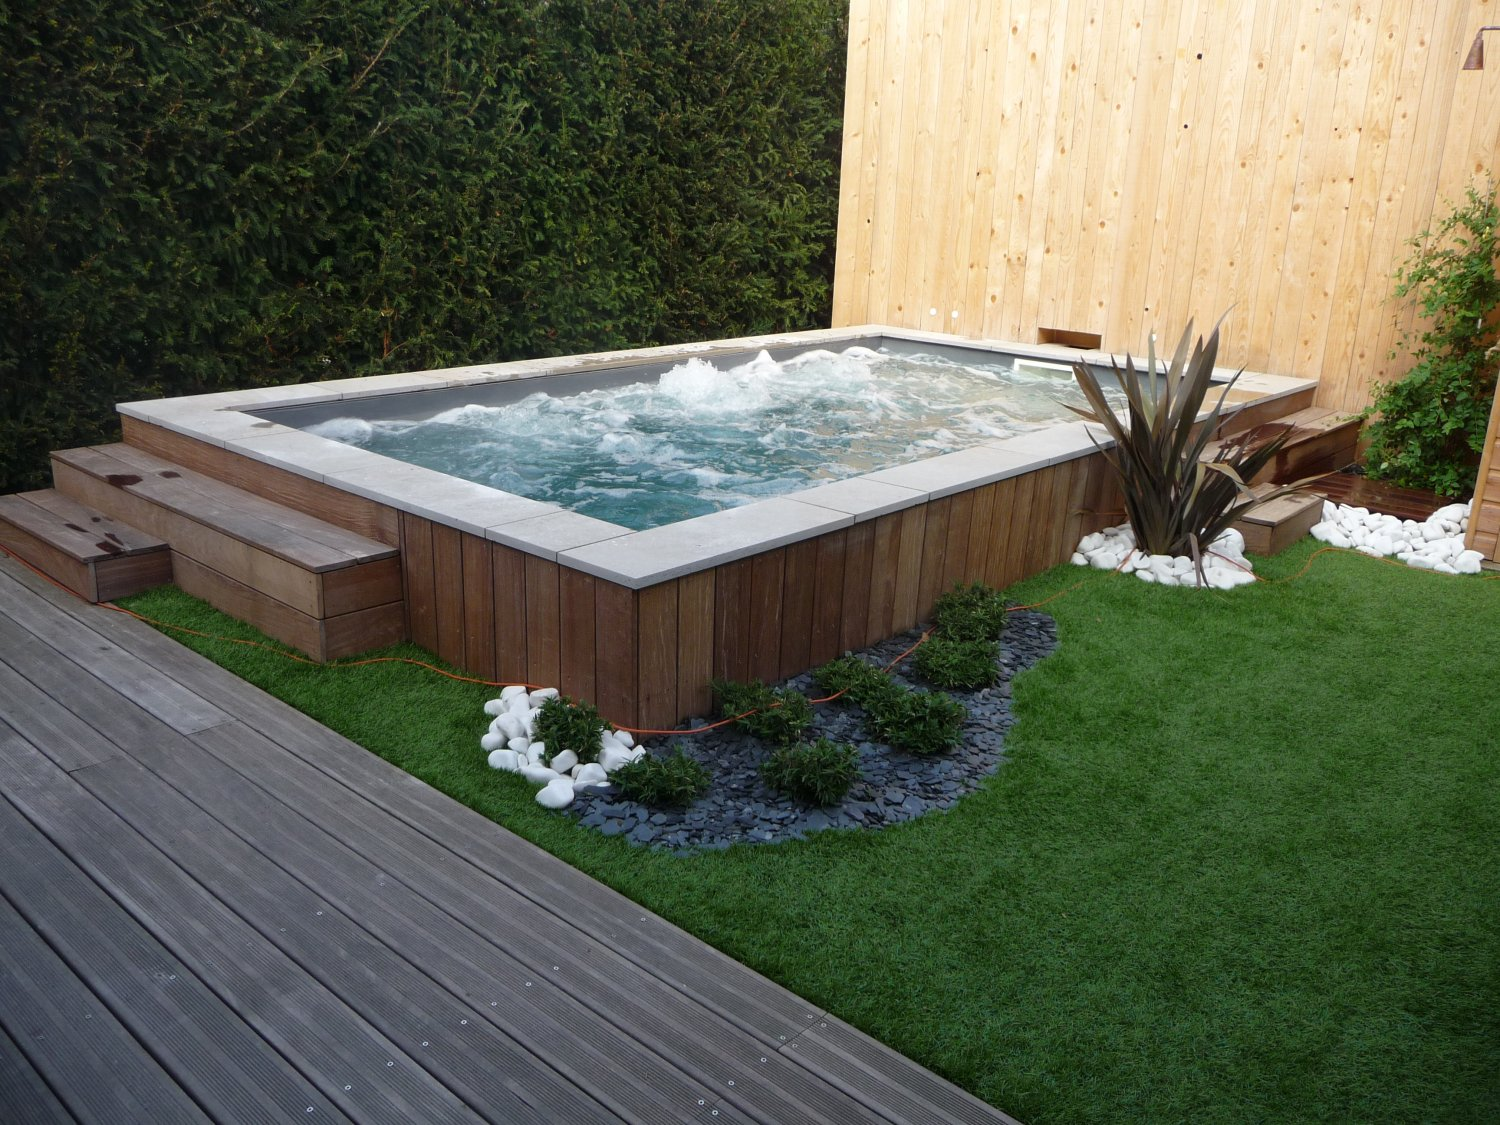 Am nager son jardin ext rieur faire une terrasse en bois for Amenager son jardin exterieur